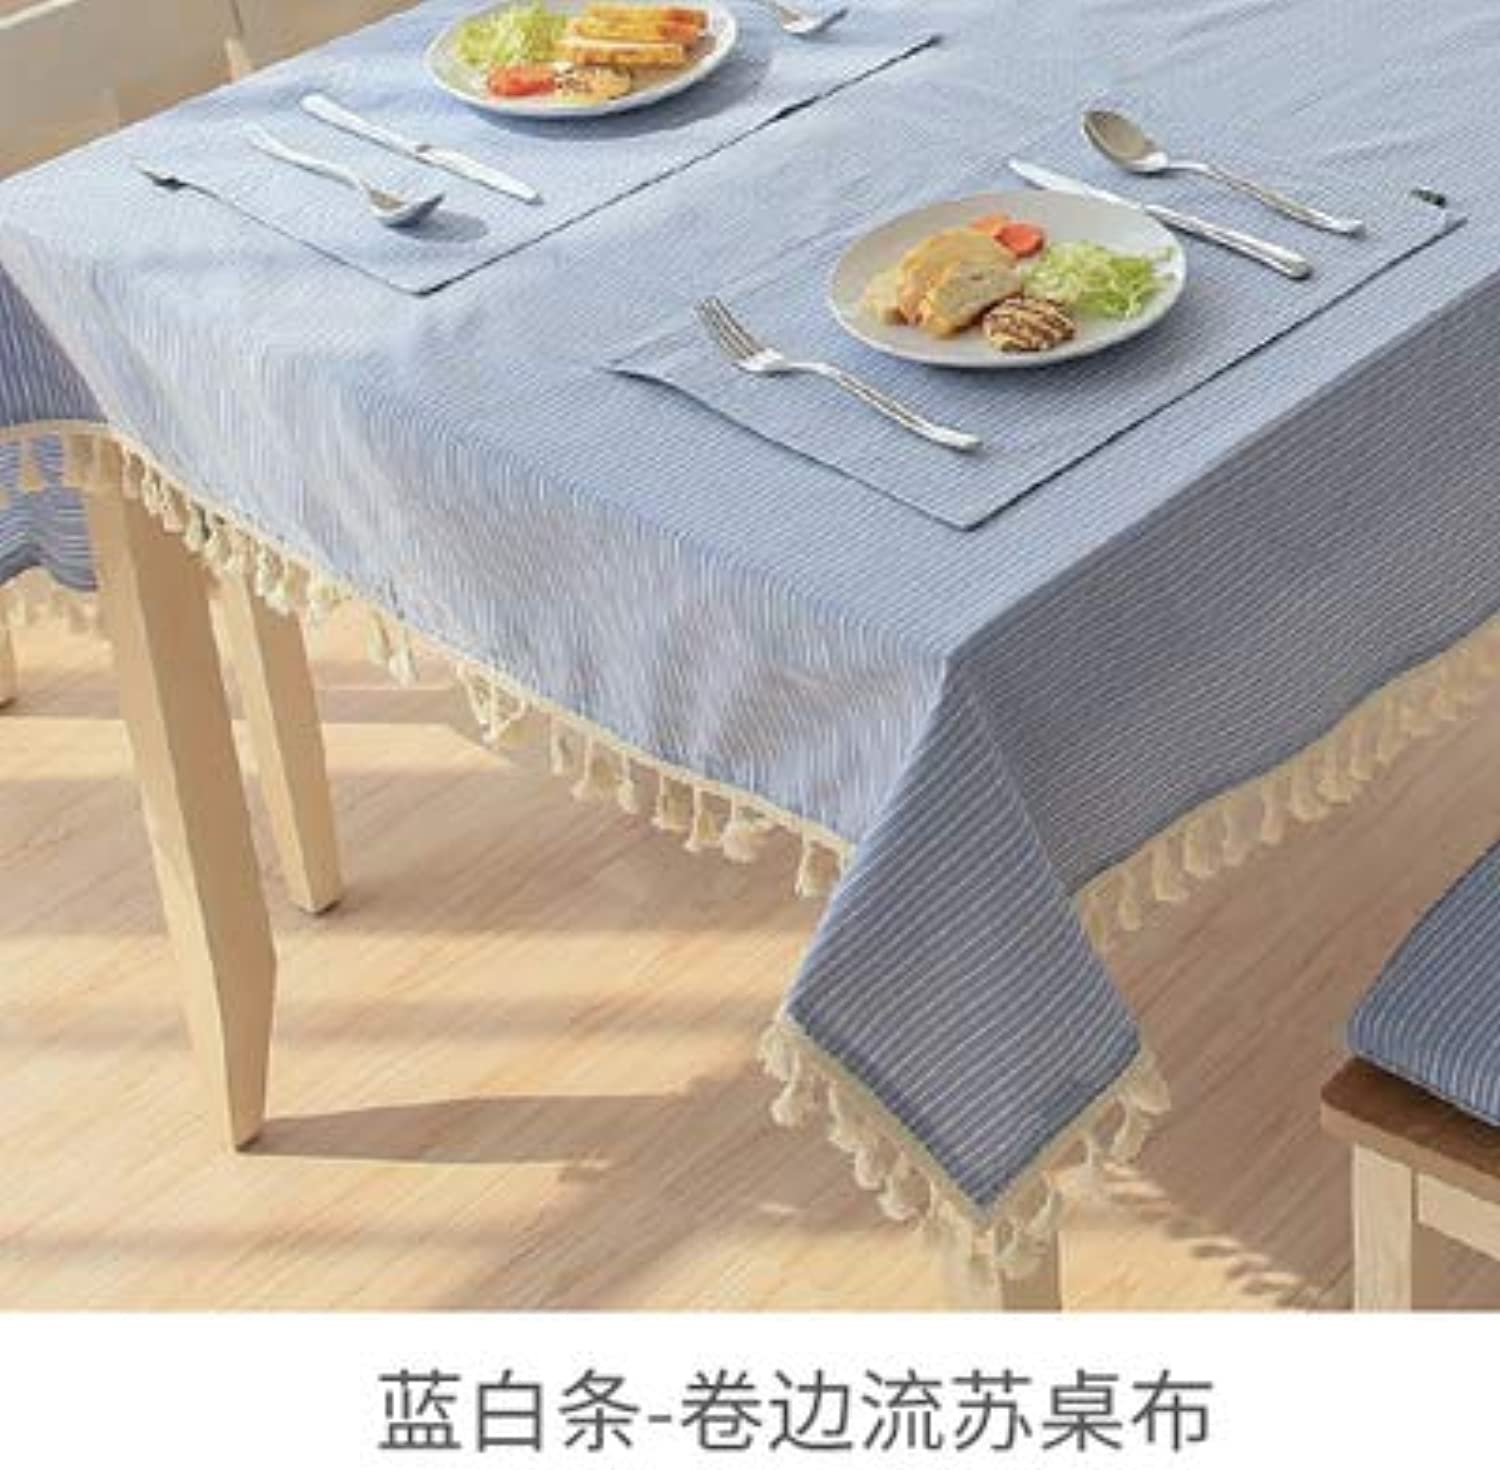 Creek Ywh Japanese tablecloth fabric rectangular table cloth simple coffee table tablecloth fabric cotton linen tablecloth garden, bluee and white, 140180cm